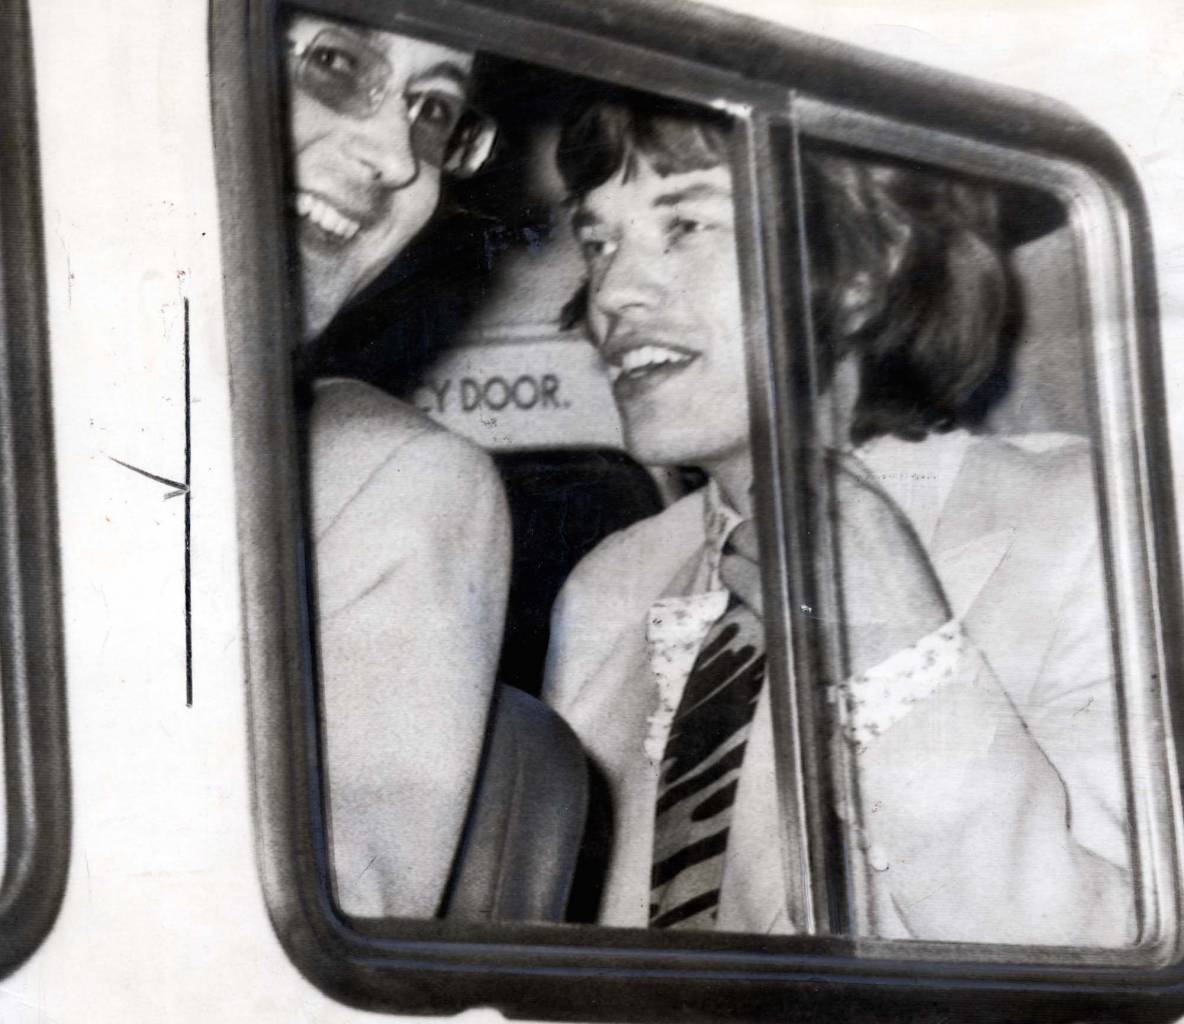 Mick Jagger - Pop Star Mick Jagger In The Police Van On The Way To Lewes Prison. Mick Jagger Lead Singer With The Rolling Stones Pop Group Went To Court In A Blue Continental Bentley Yesterday. Three And Half Hours Later After Being Found Guilty On A Drugs Charge - He Was Driven Off To Lewes Prison In An Austere Grey Police Van.